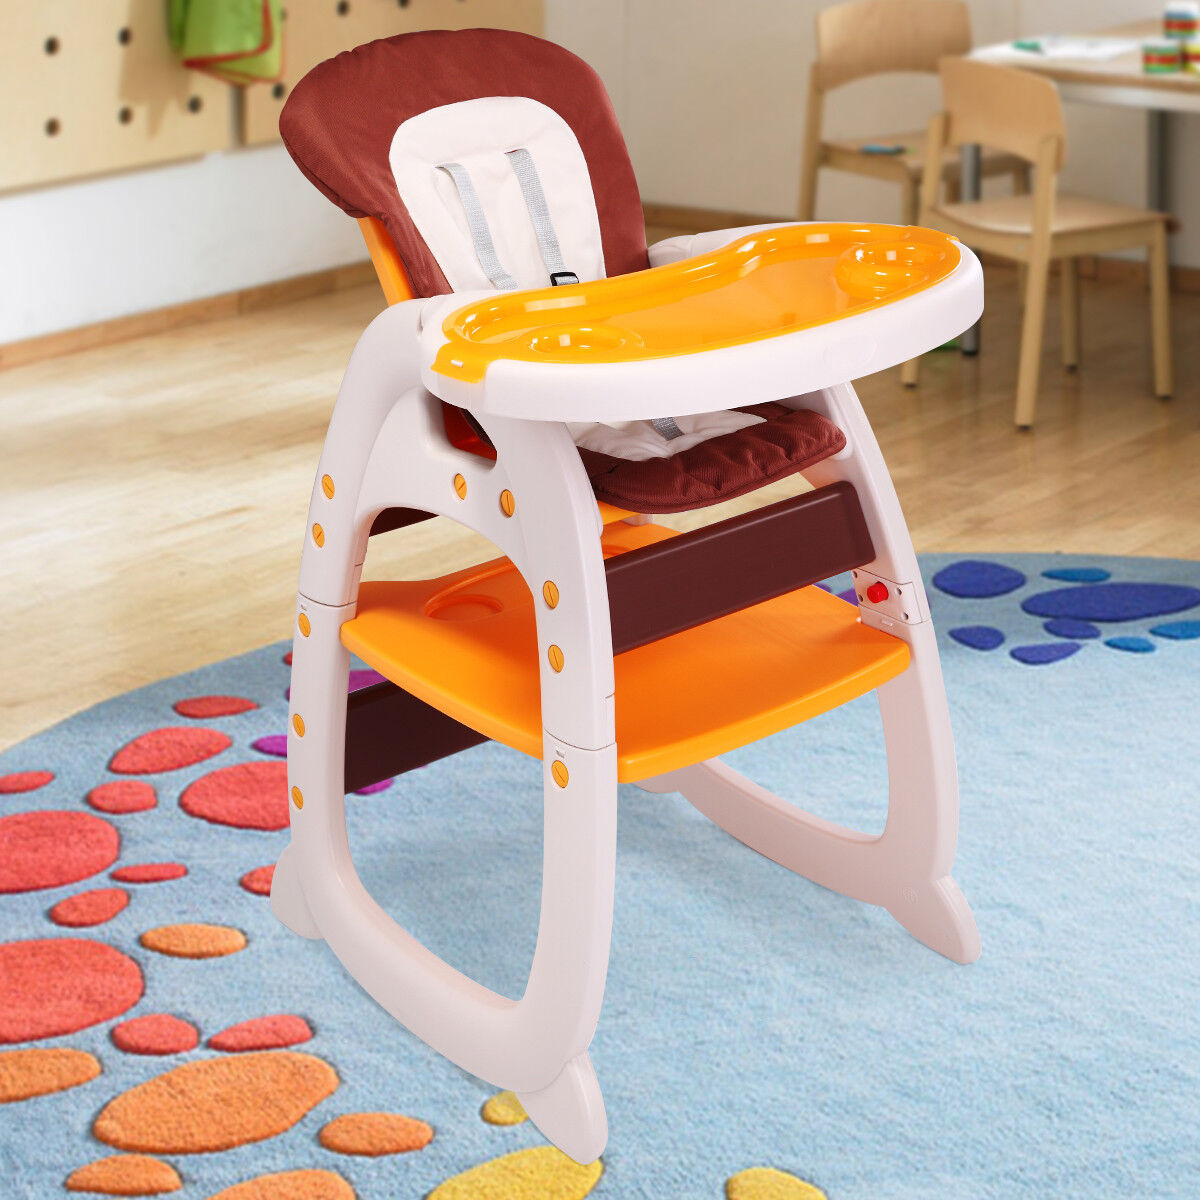 Details about 3 in 1 Baby High Chair Convertible Toddler Play Seat Booster&Feeding Table Tray